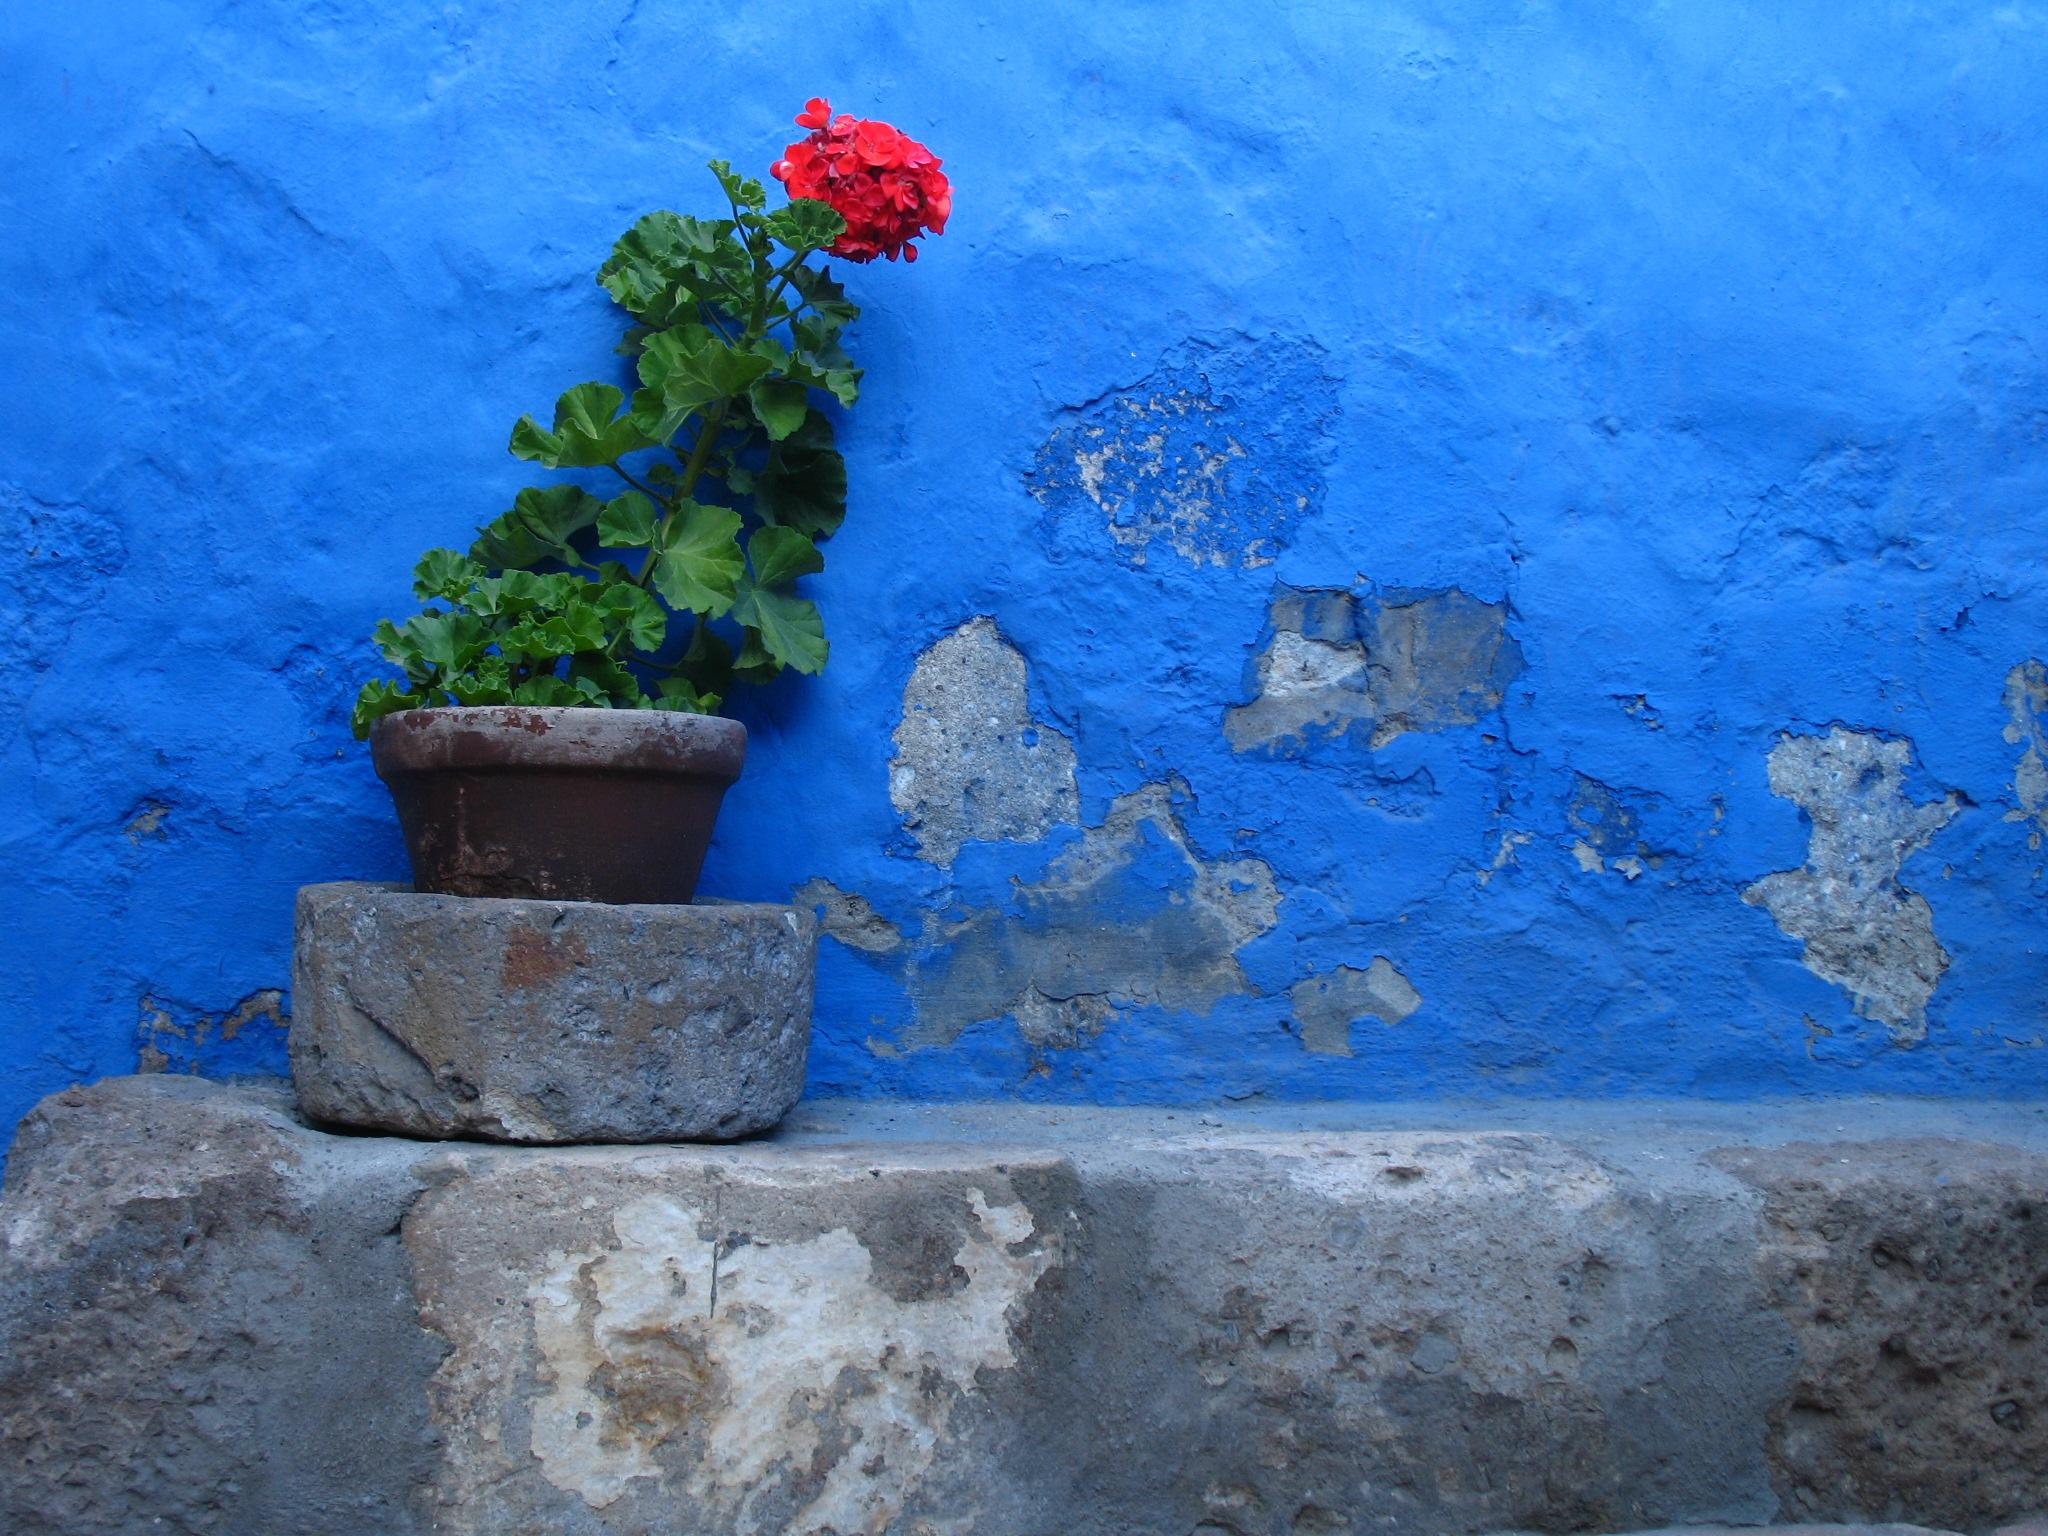 Colours of Arequipa